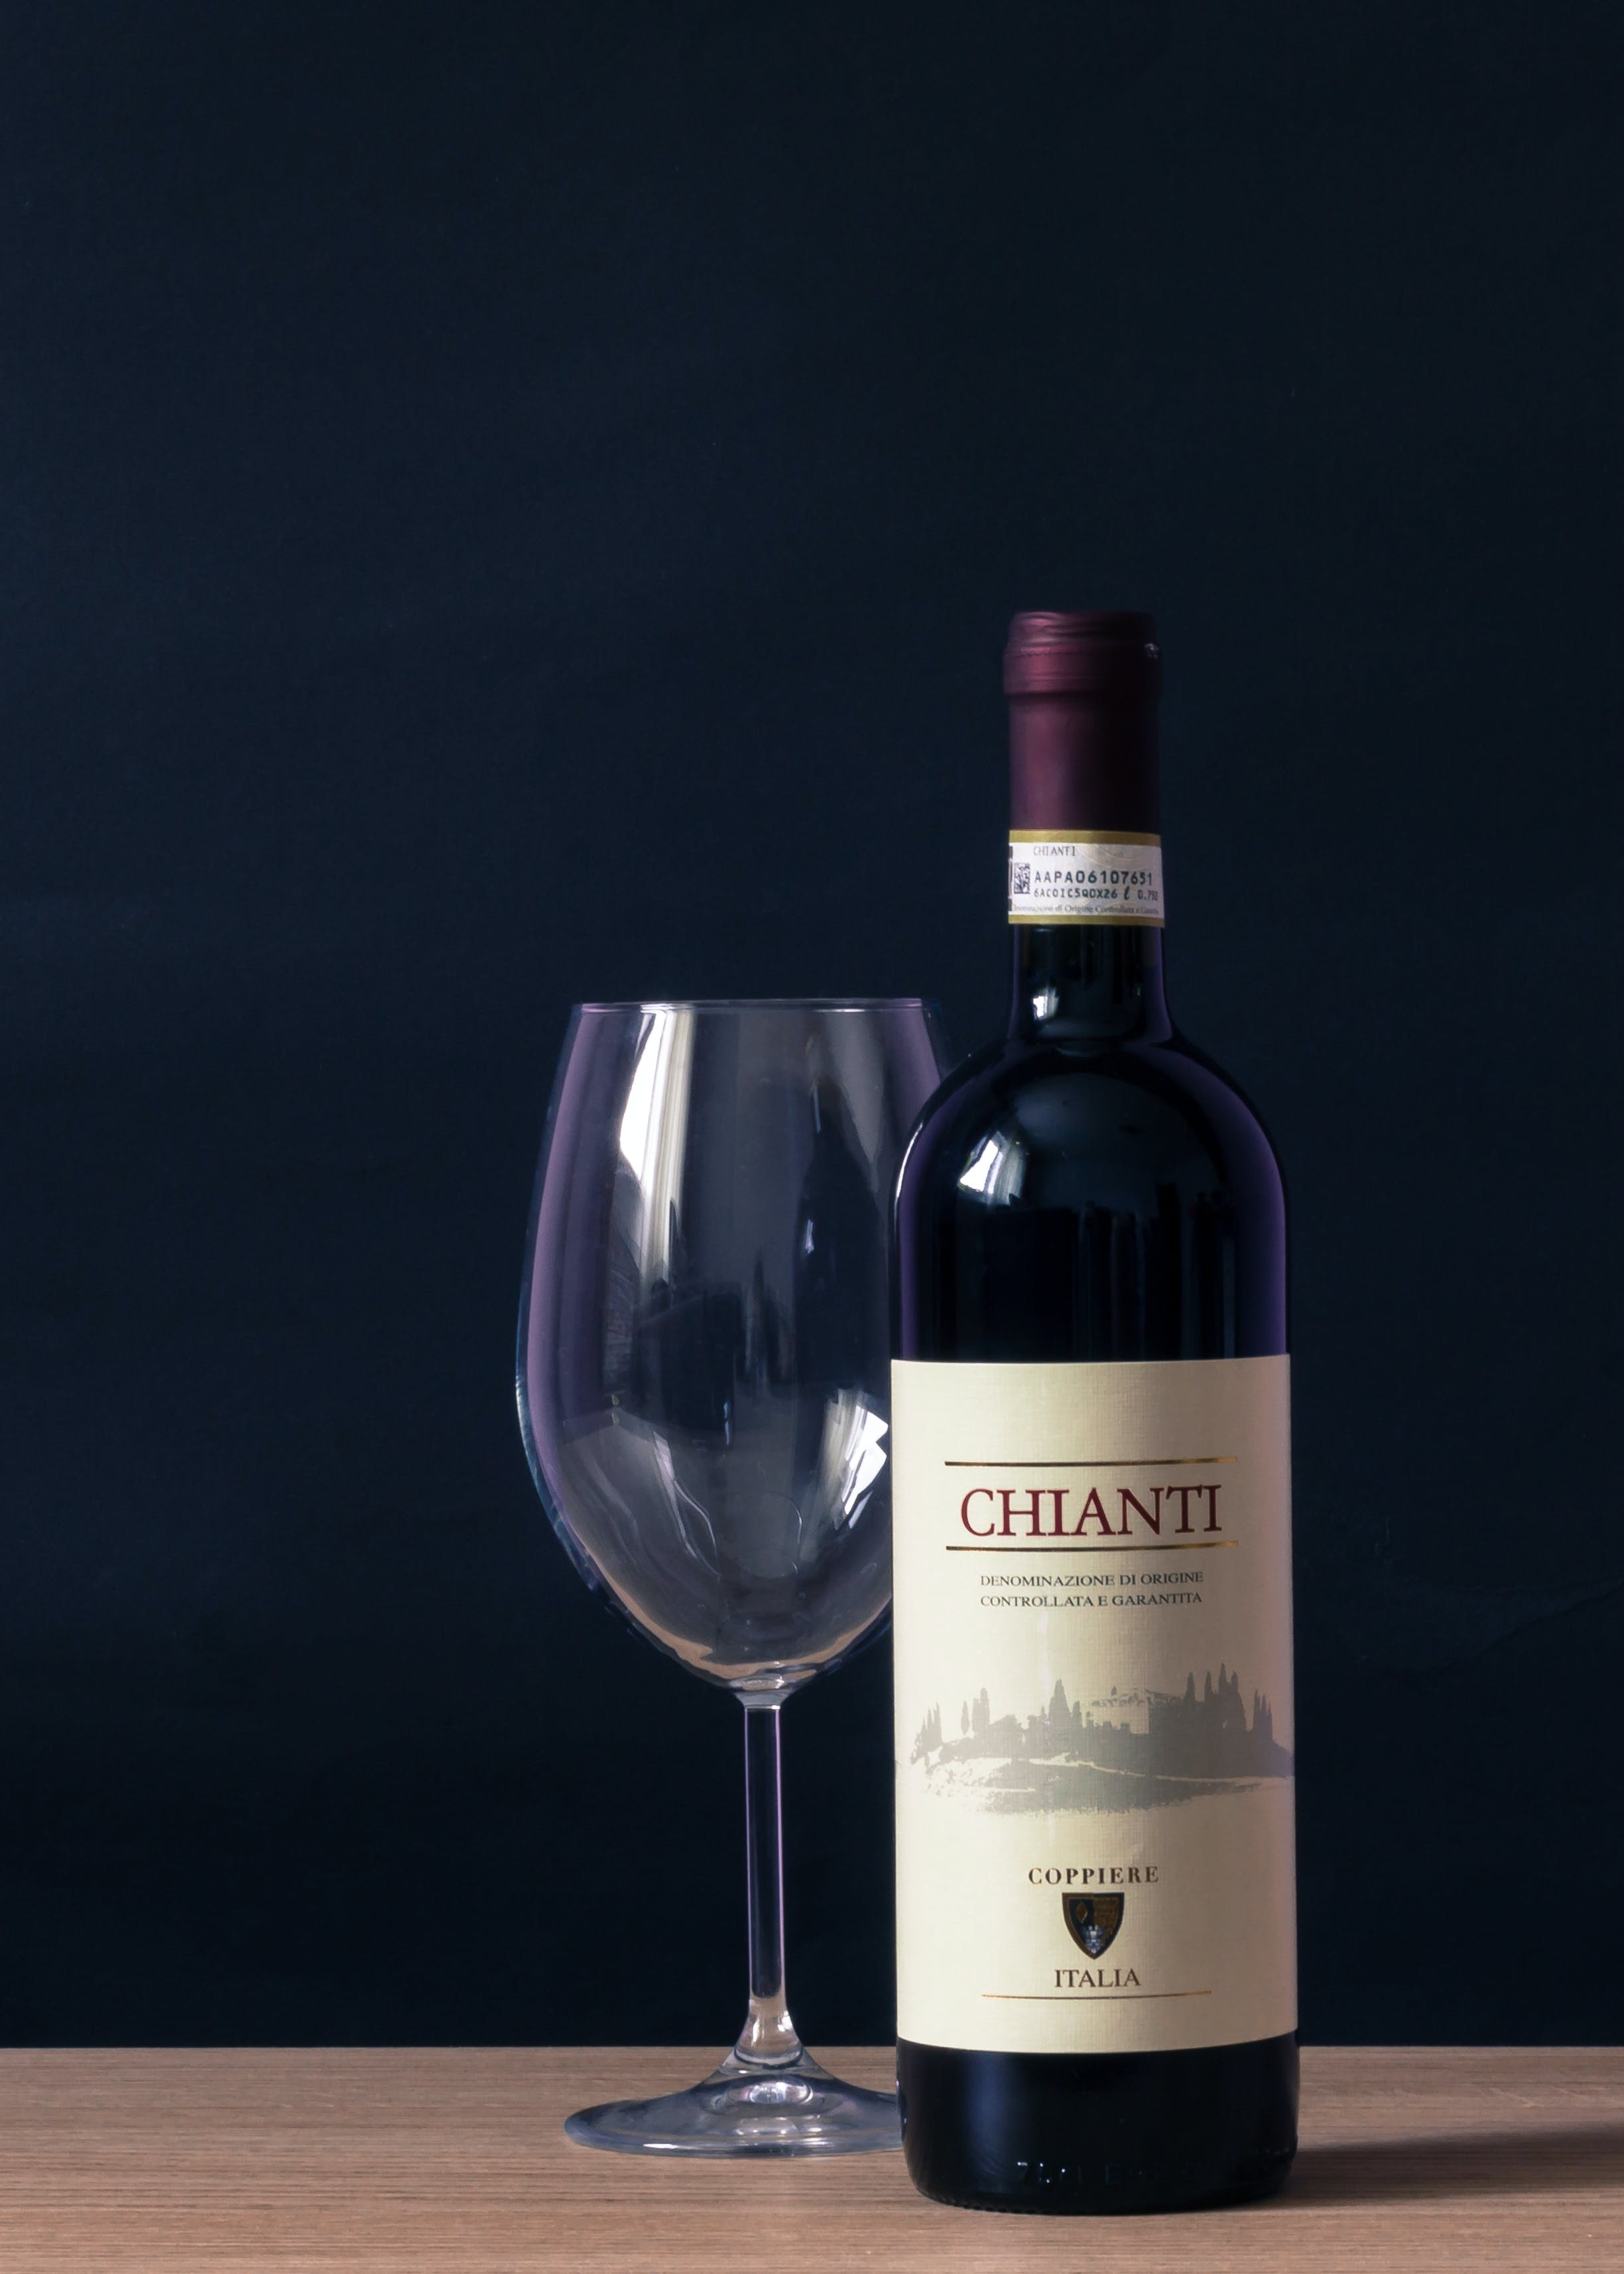 Chianti Labeled Bottle and Clear Long Stem Glass on Table